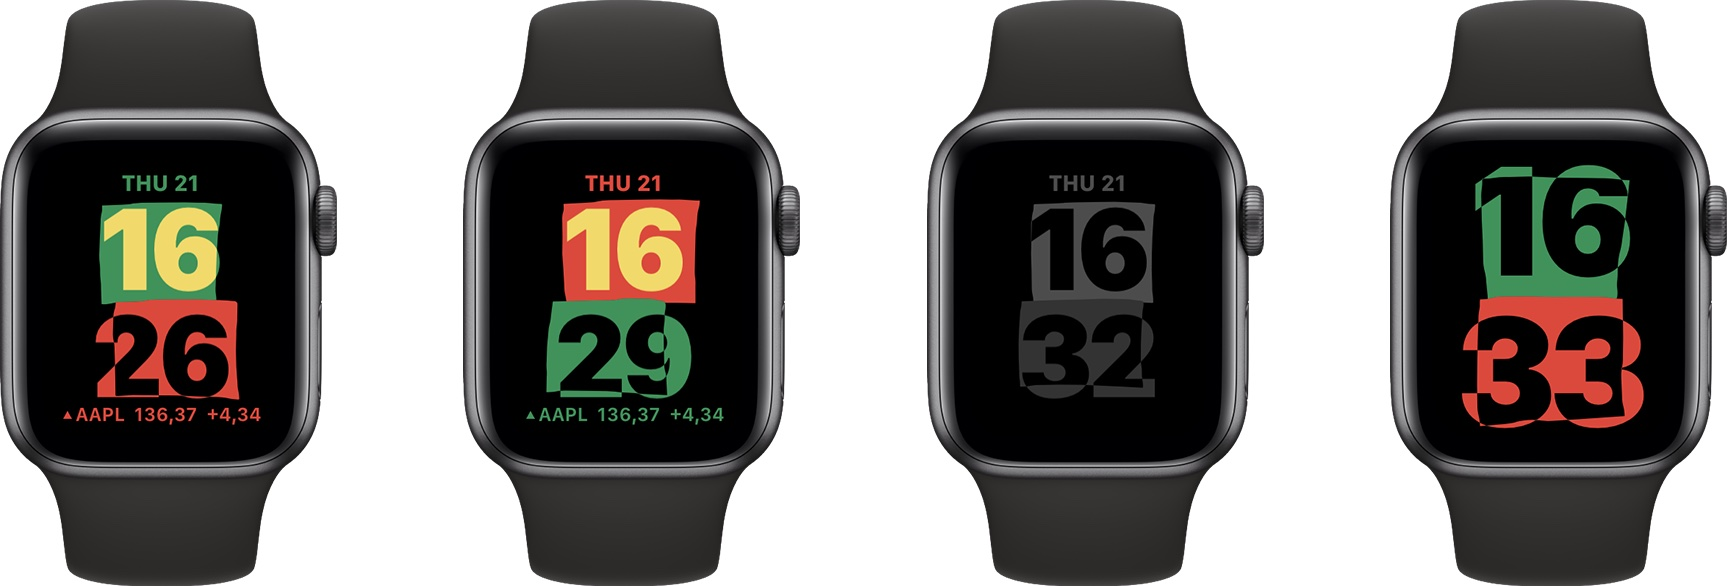 Apple Watch screenshots showing the new Unity watch face, inspired by the colors of the Pan-African flag, that's available with the watchOS 7.3 software